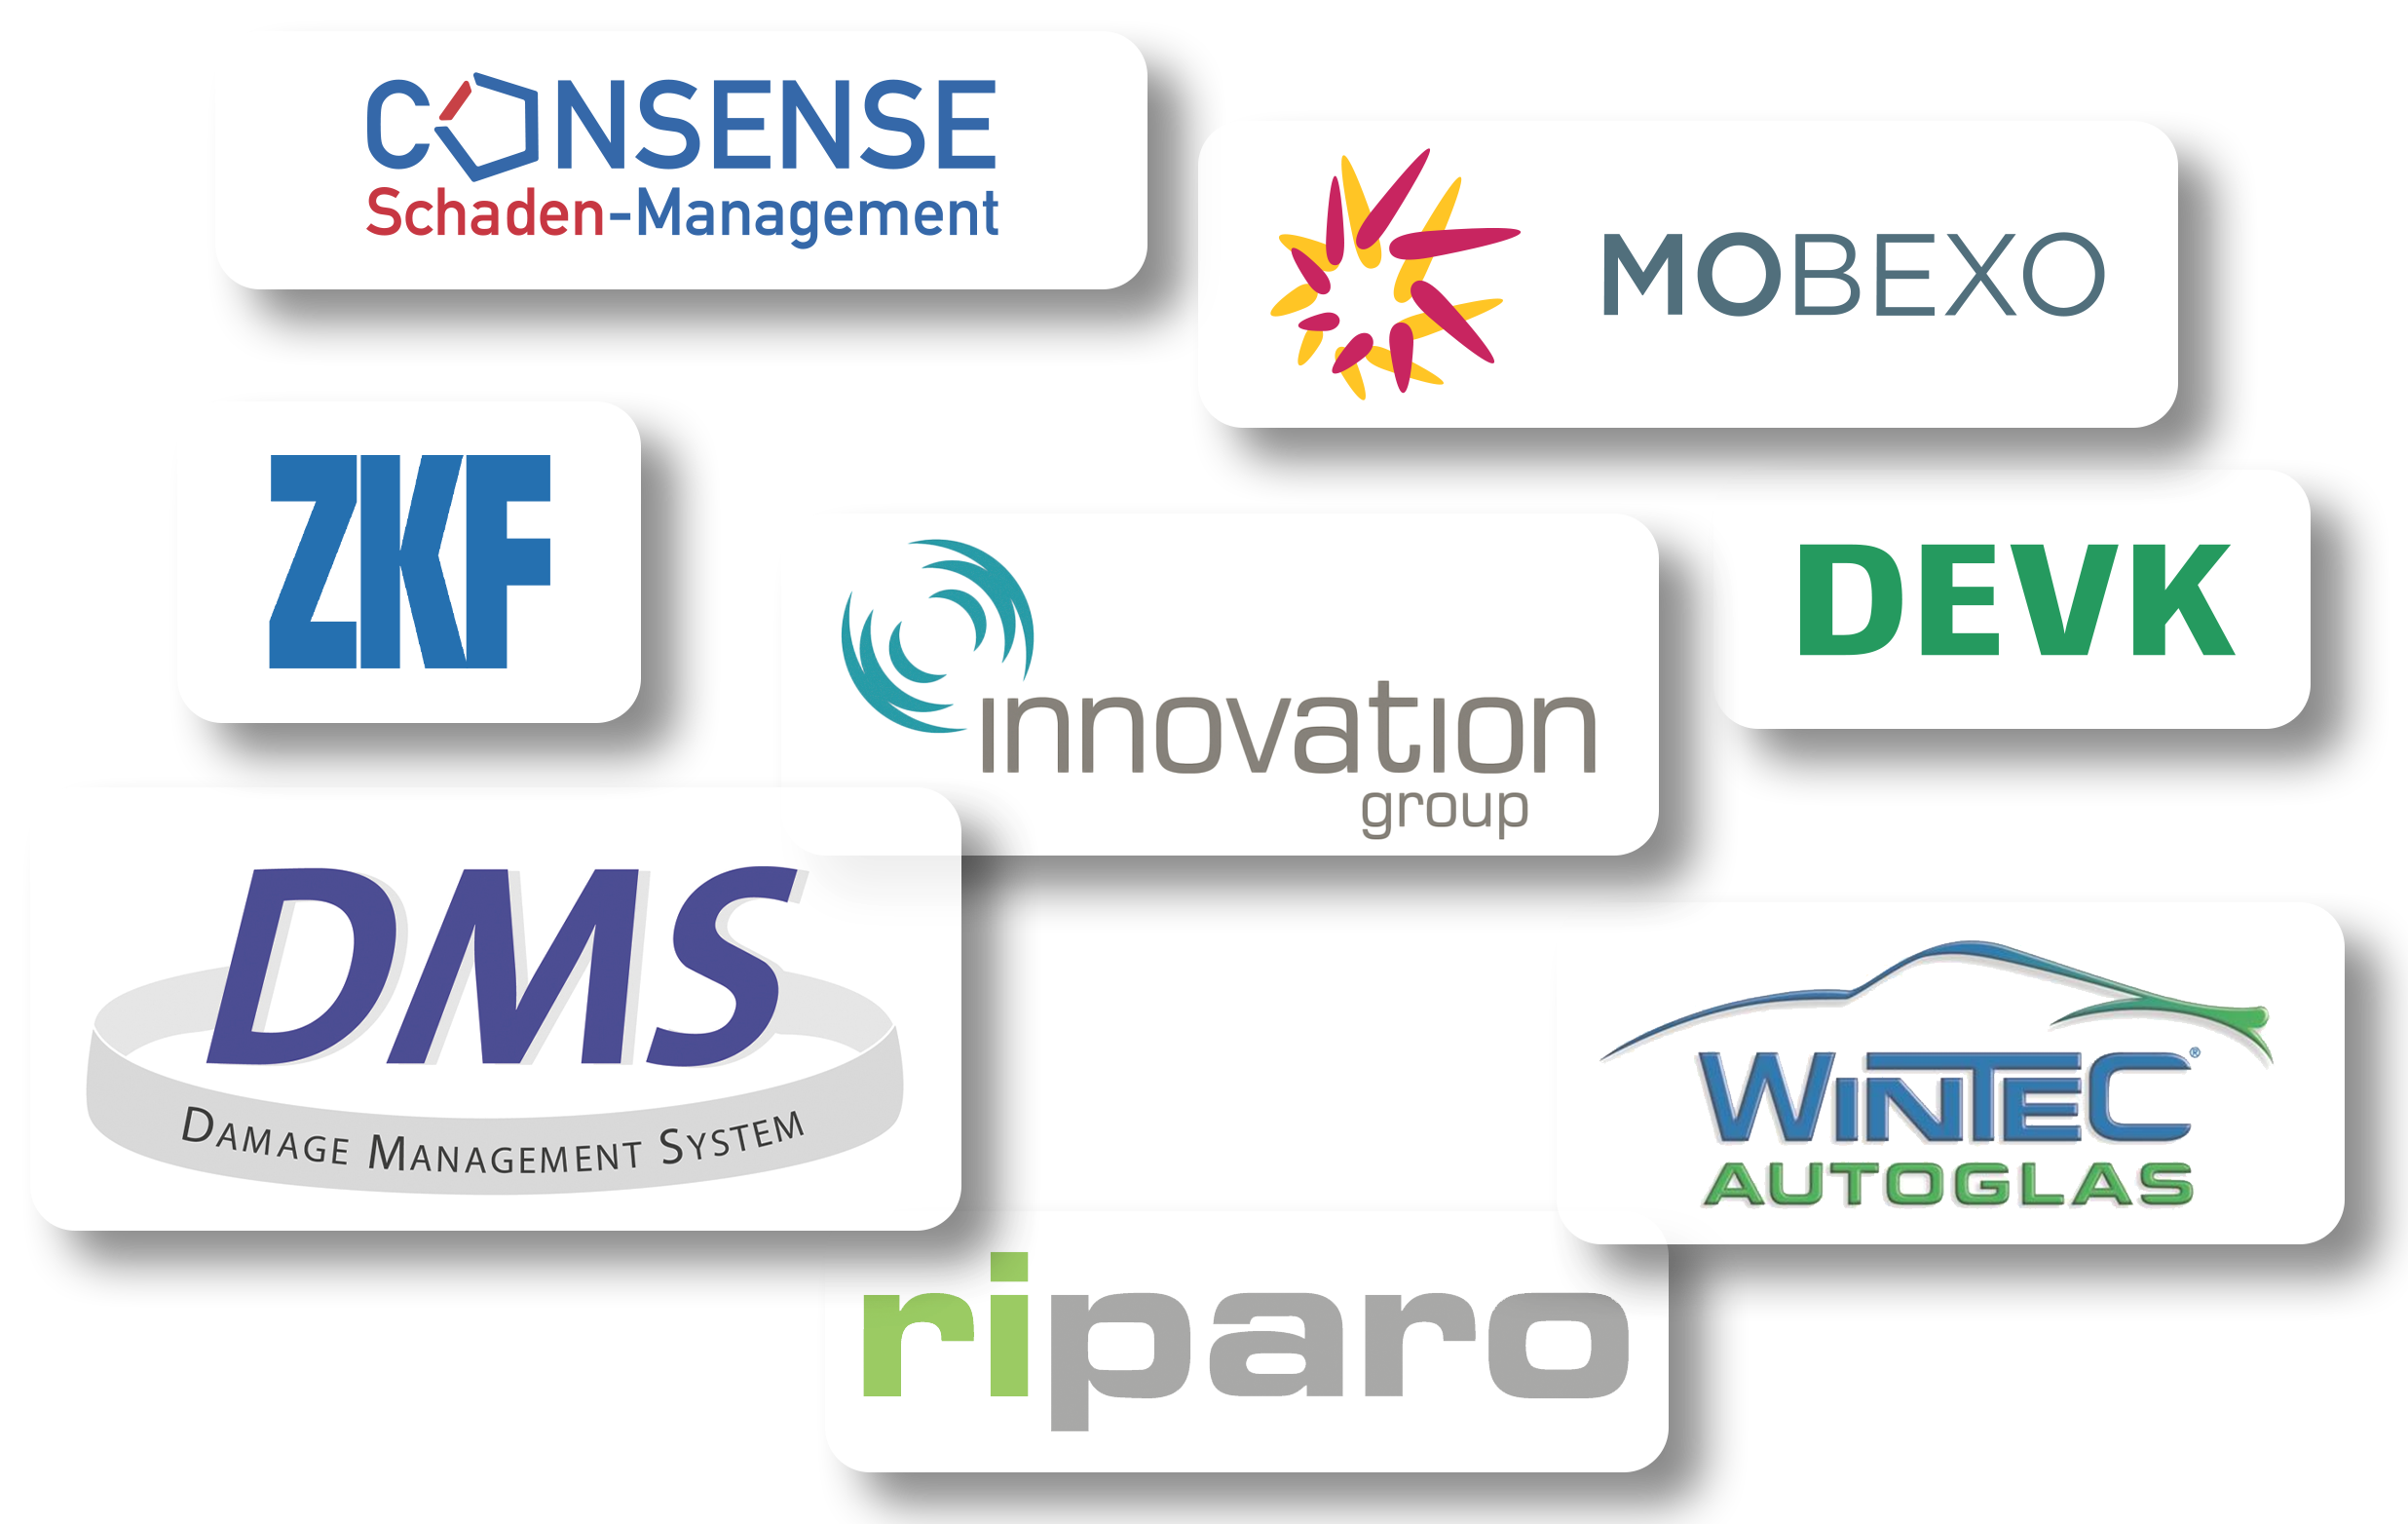 Consense Schaden-Management | DEVK | ZKF | innovation group | DMS Damage Management System | riparo | Wintec Autoglas